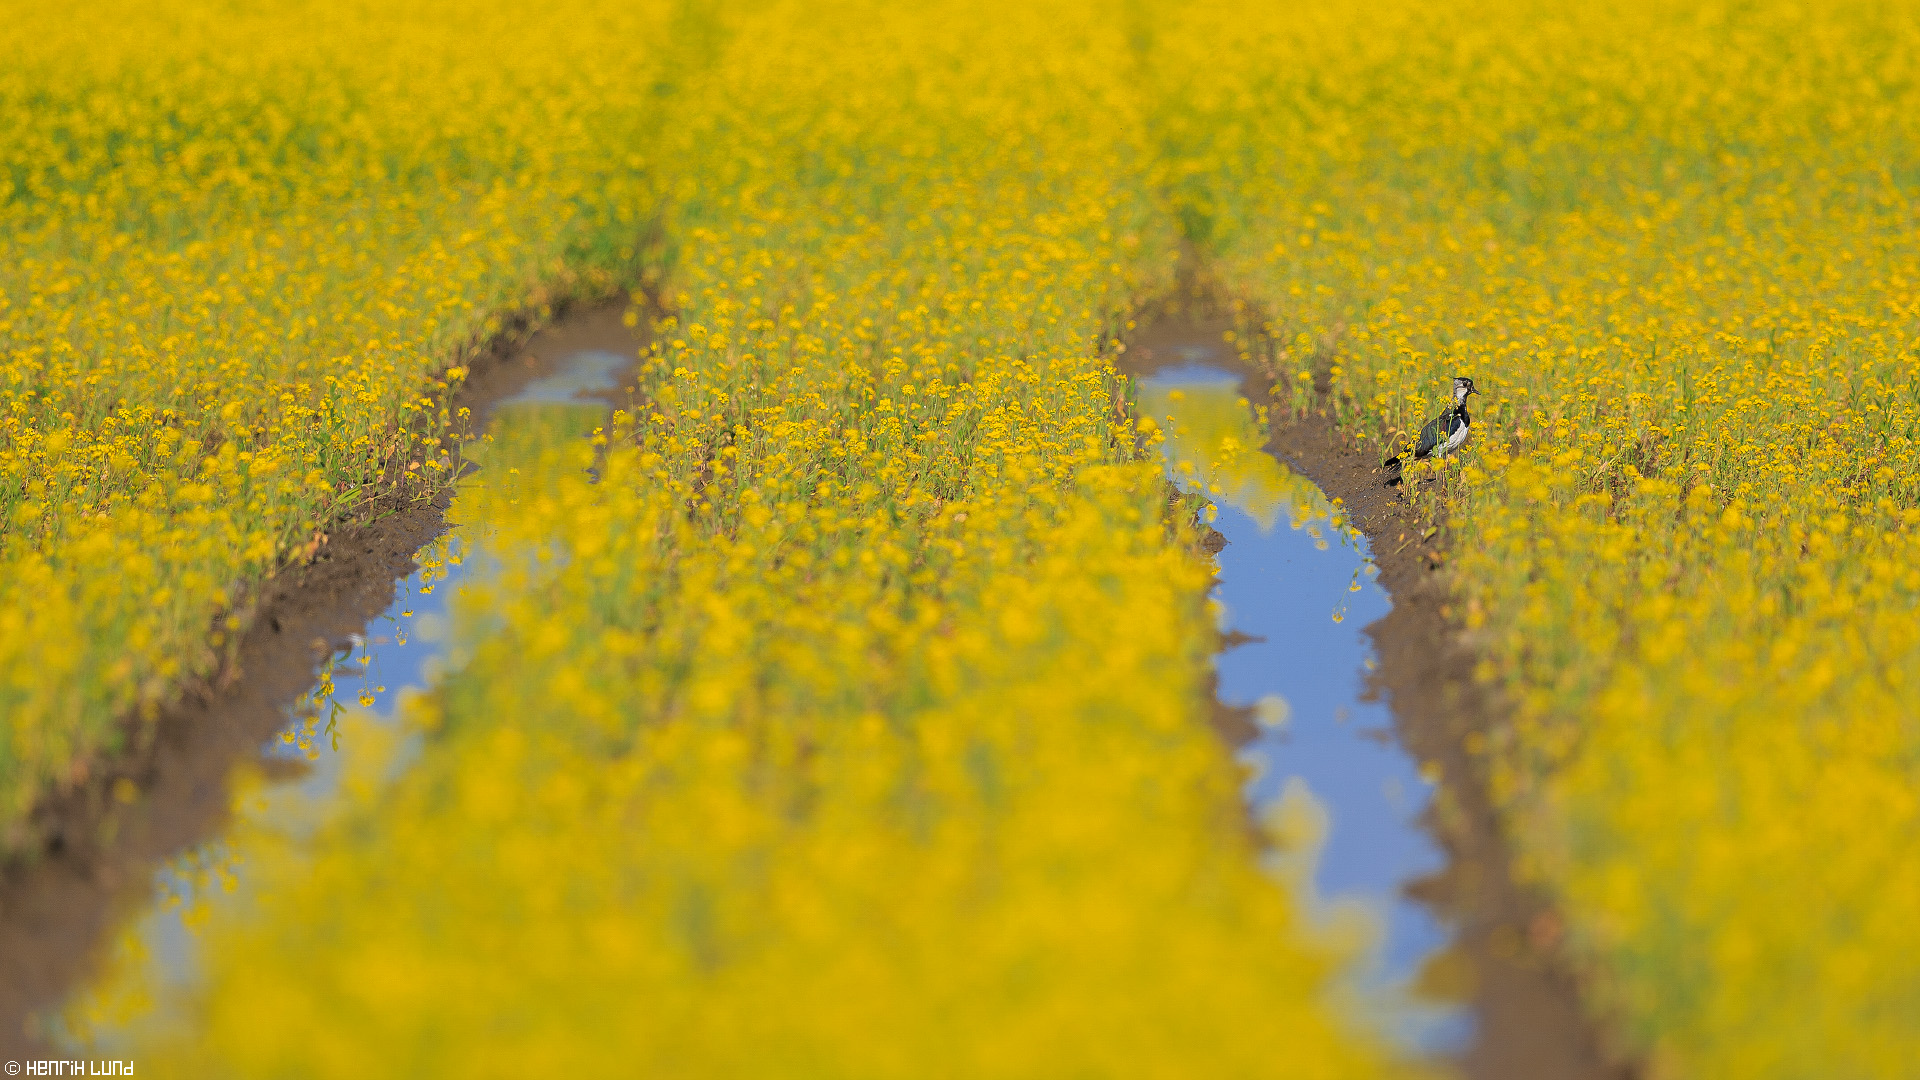 Northern lapwing enjoying a waterhole in the rapeseed-field. Lovisa, Finland, July, 2014.